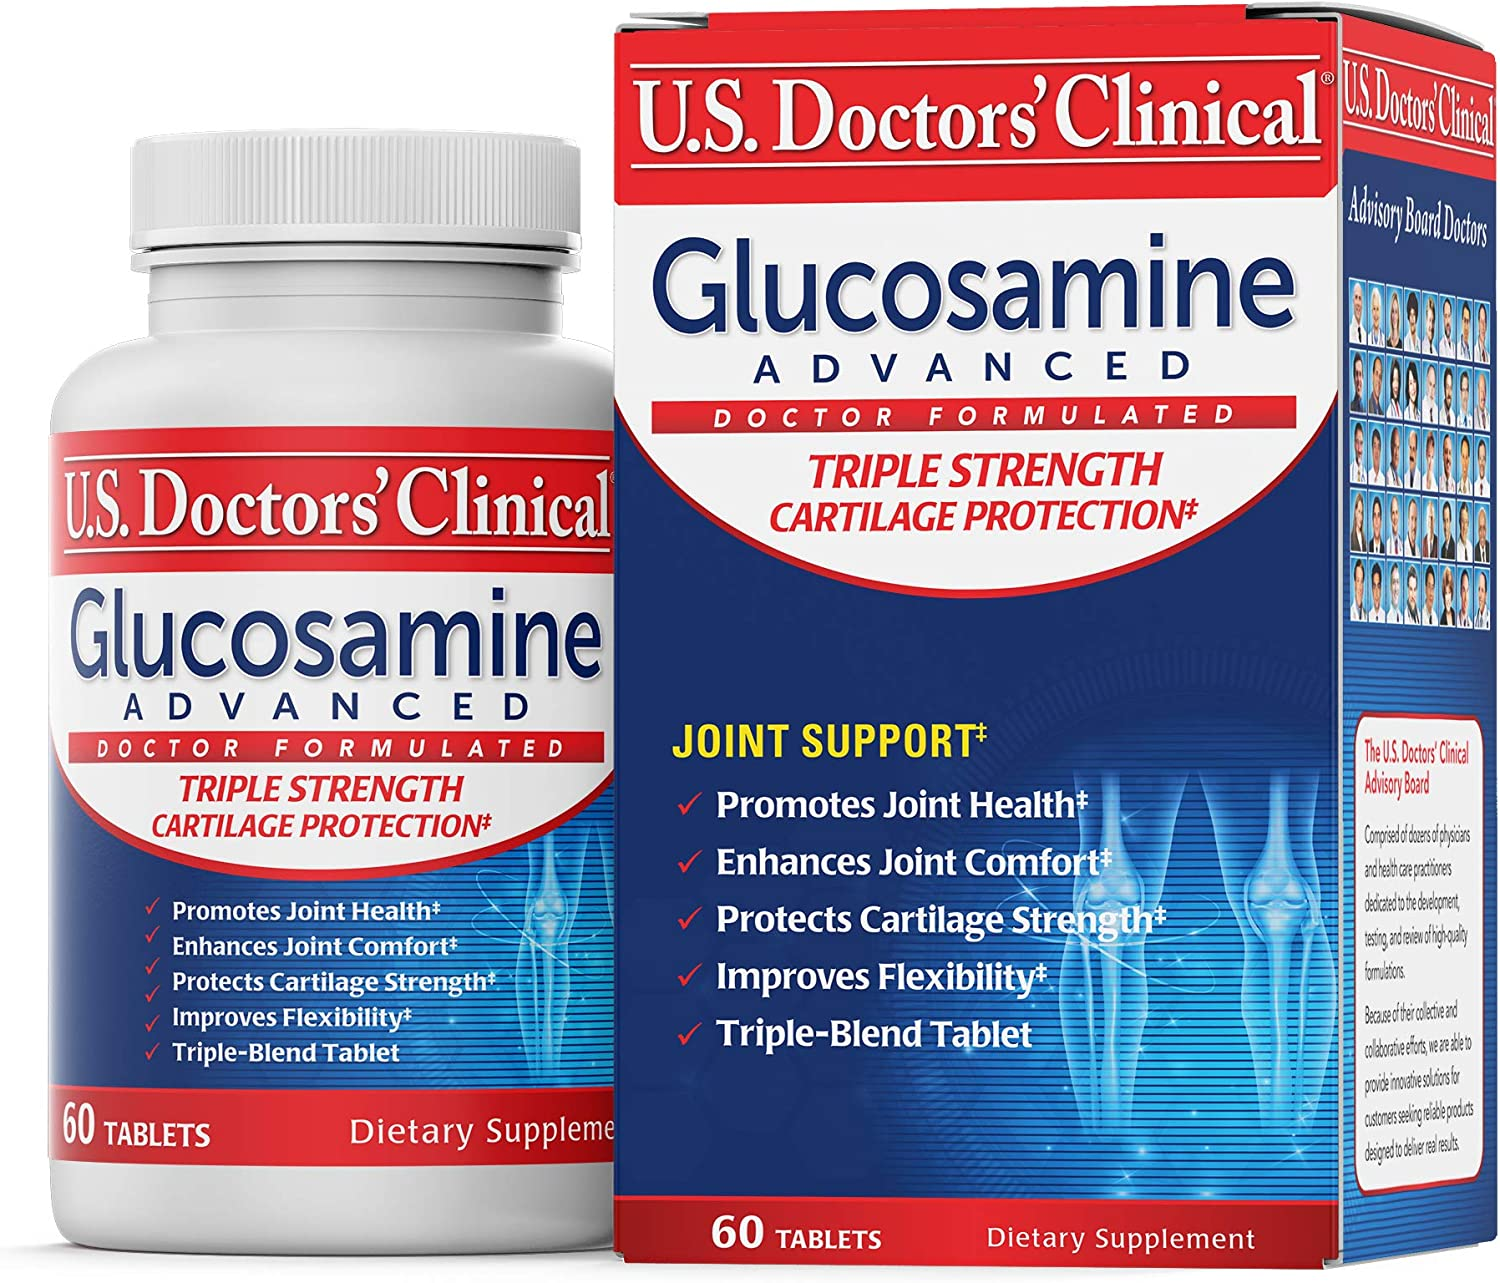 U.S. Doctors' Clinical Glucosamine Advanced Triple-Strength Joint Support with Chondroitin & MSM for Easy Joint Movement and Flexibility & Cartilage Strength Protection [1 Month Supply – 60 Tablets]